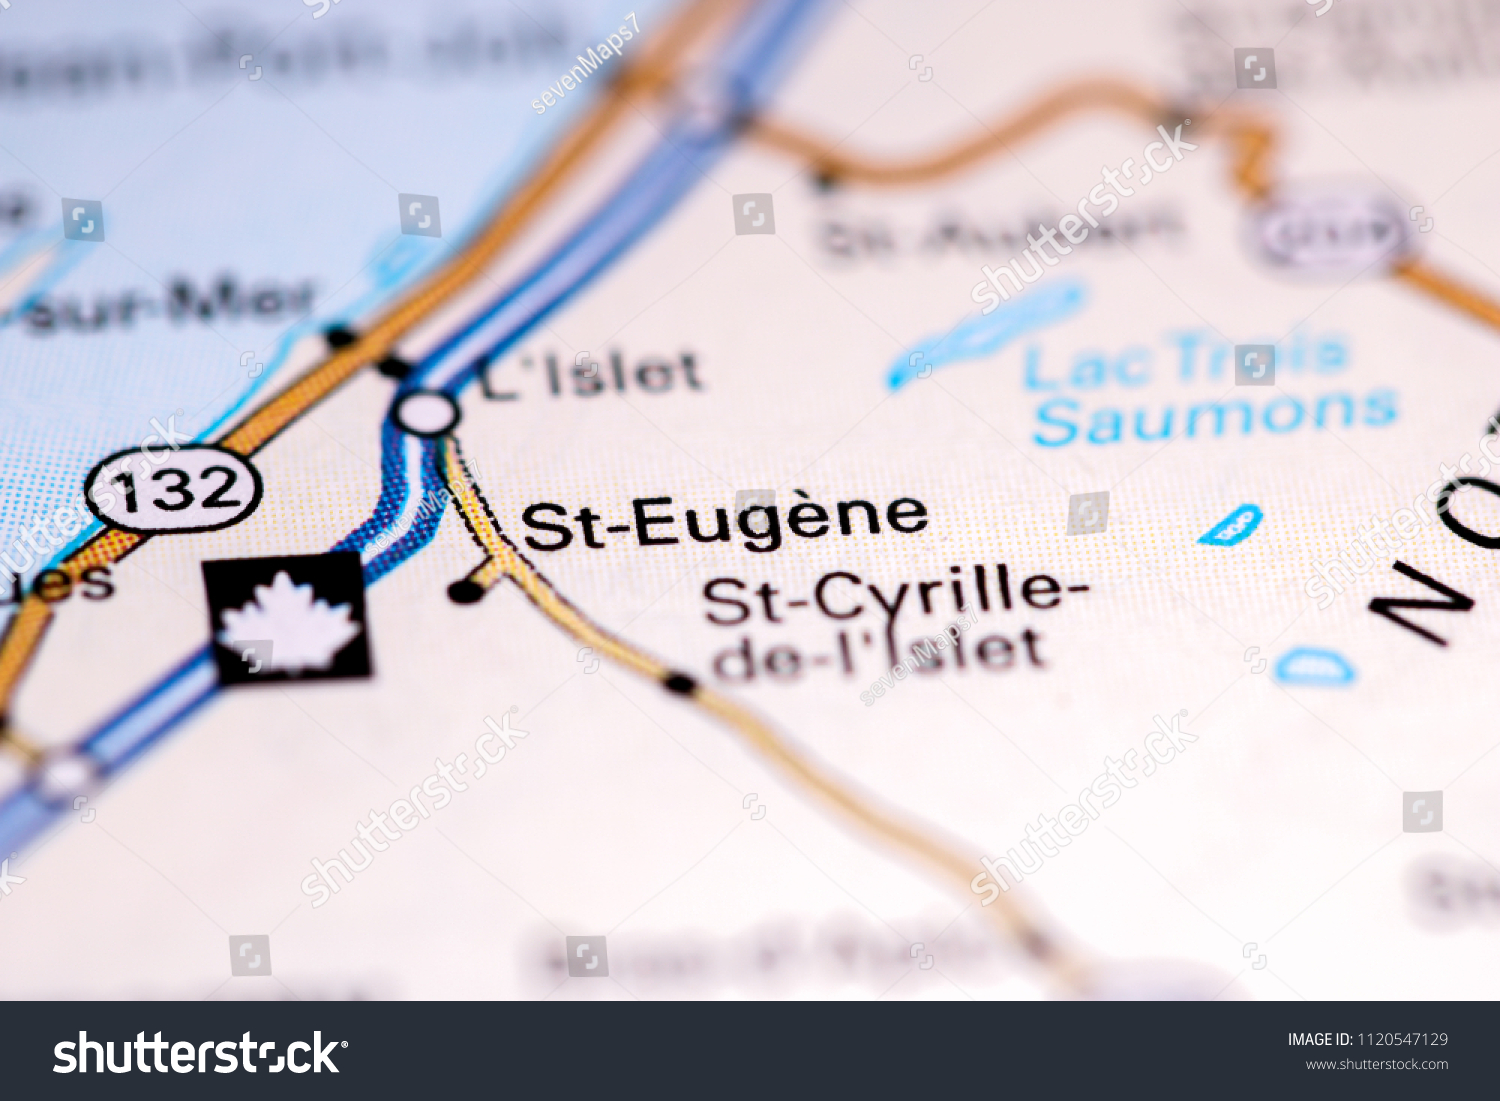 Eugene Map Of Canada on map of springfield area, map of surrounding area, map of grande ronde, map of sellwood, map of easley, map of yamhill co, map of chiloquin, map of tiffany, map of cave junction, map of gleneden beach, map of clatskanie, map of tucson, map of maupin, map of rogue community college, map of west columbia, map of marylhurst university, map of troutdale, map of hayward field, map of john day fossil beds, map of lane county fairgrounds,